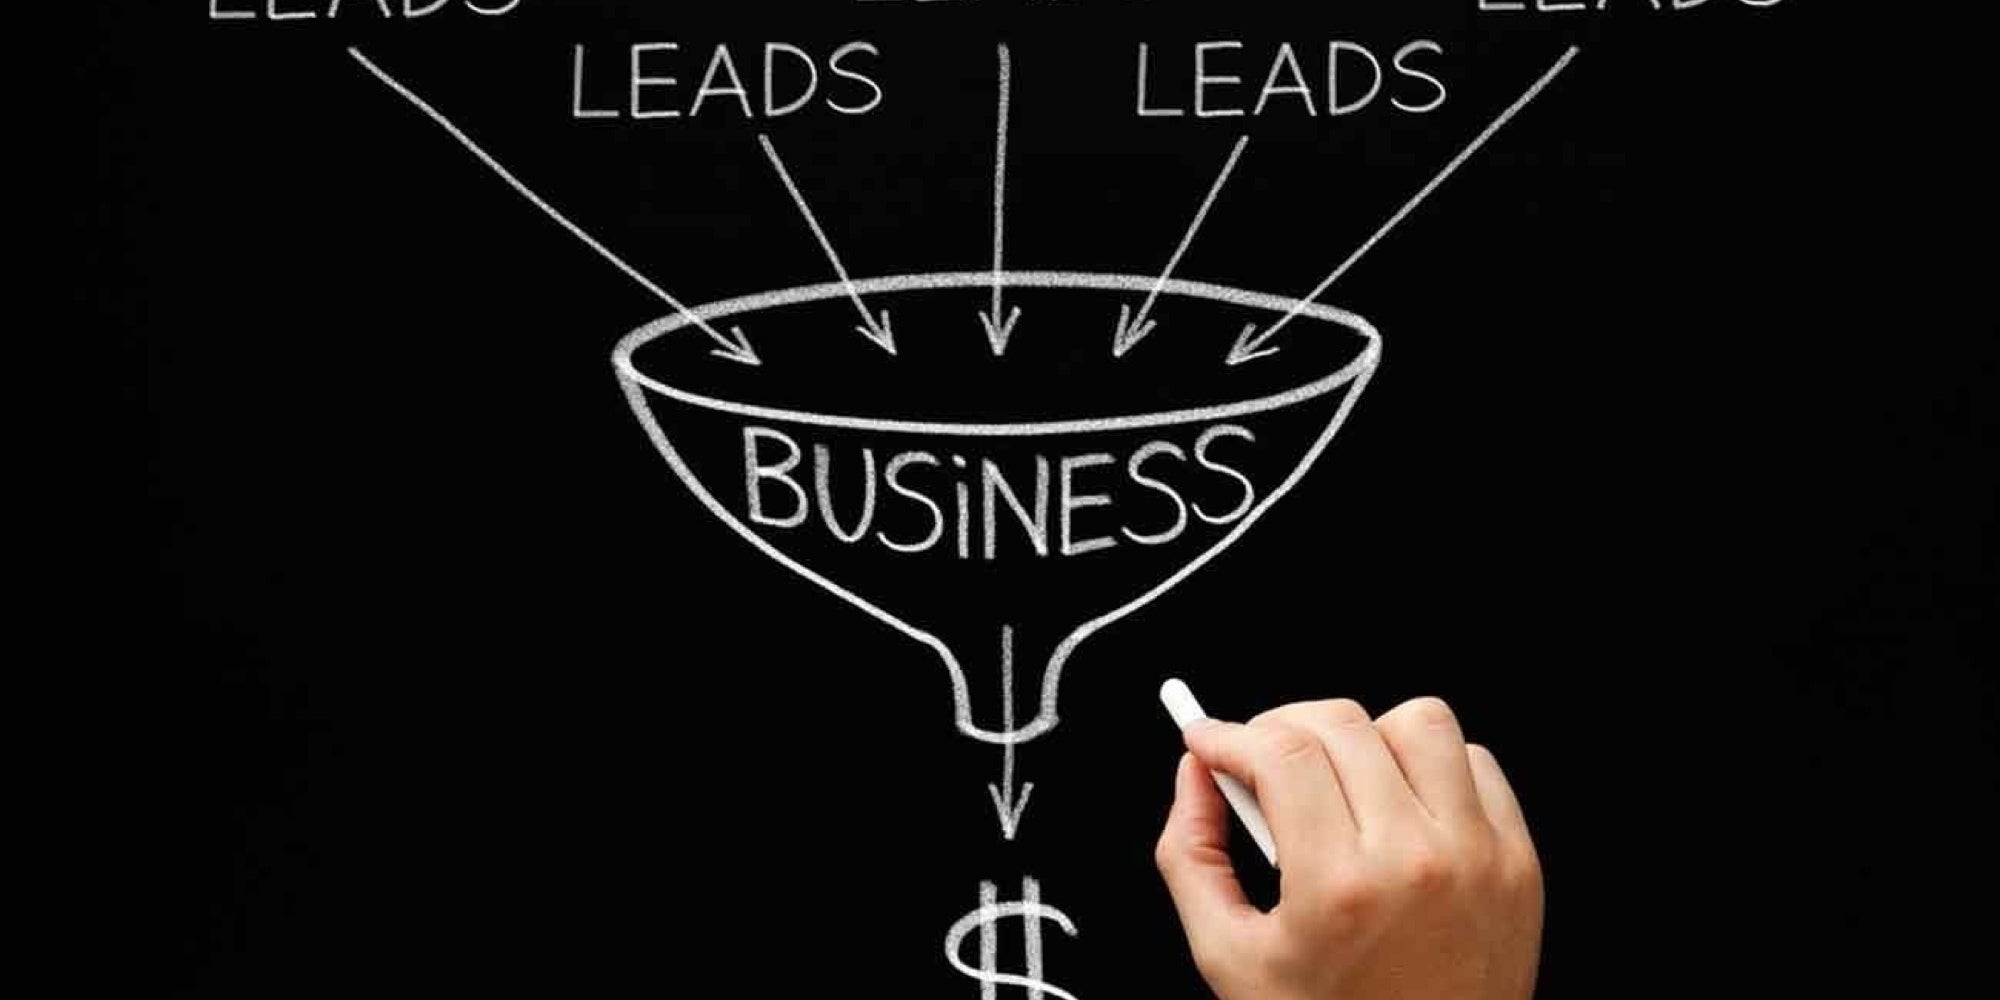 Focus on sales and marketing manically